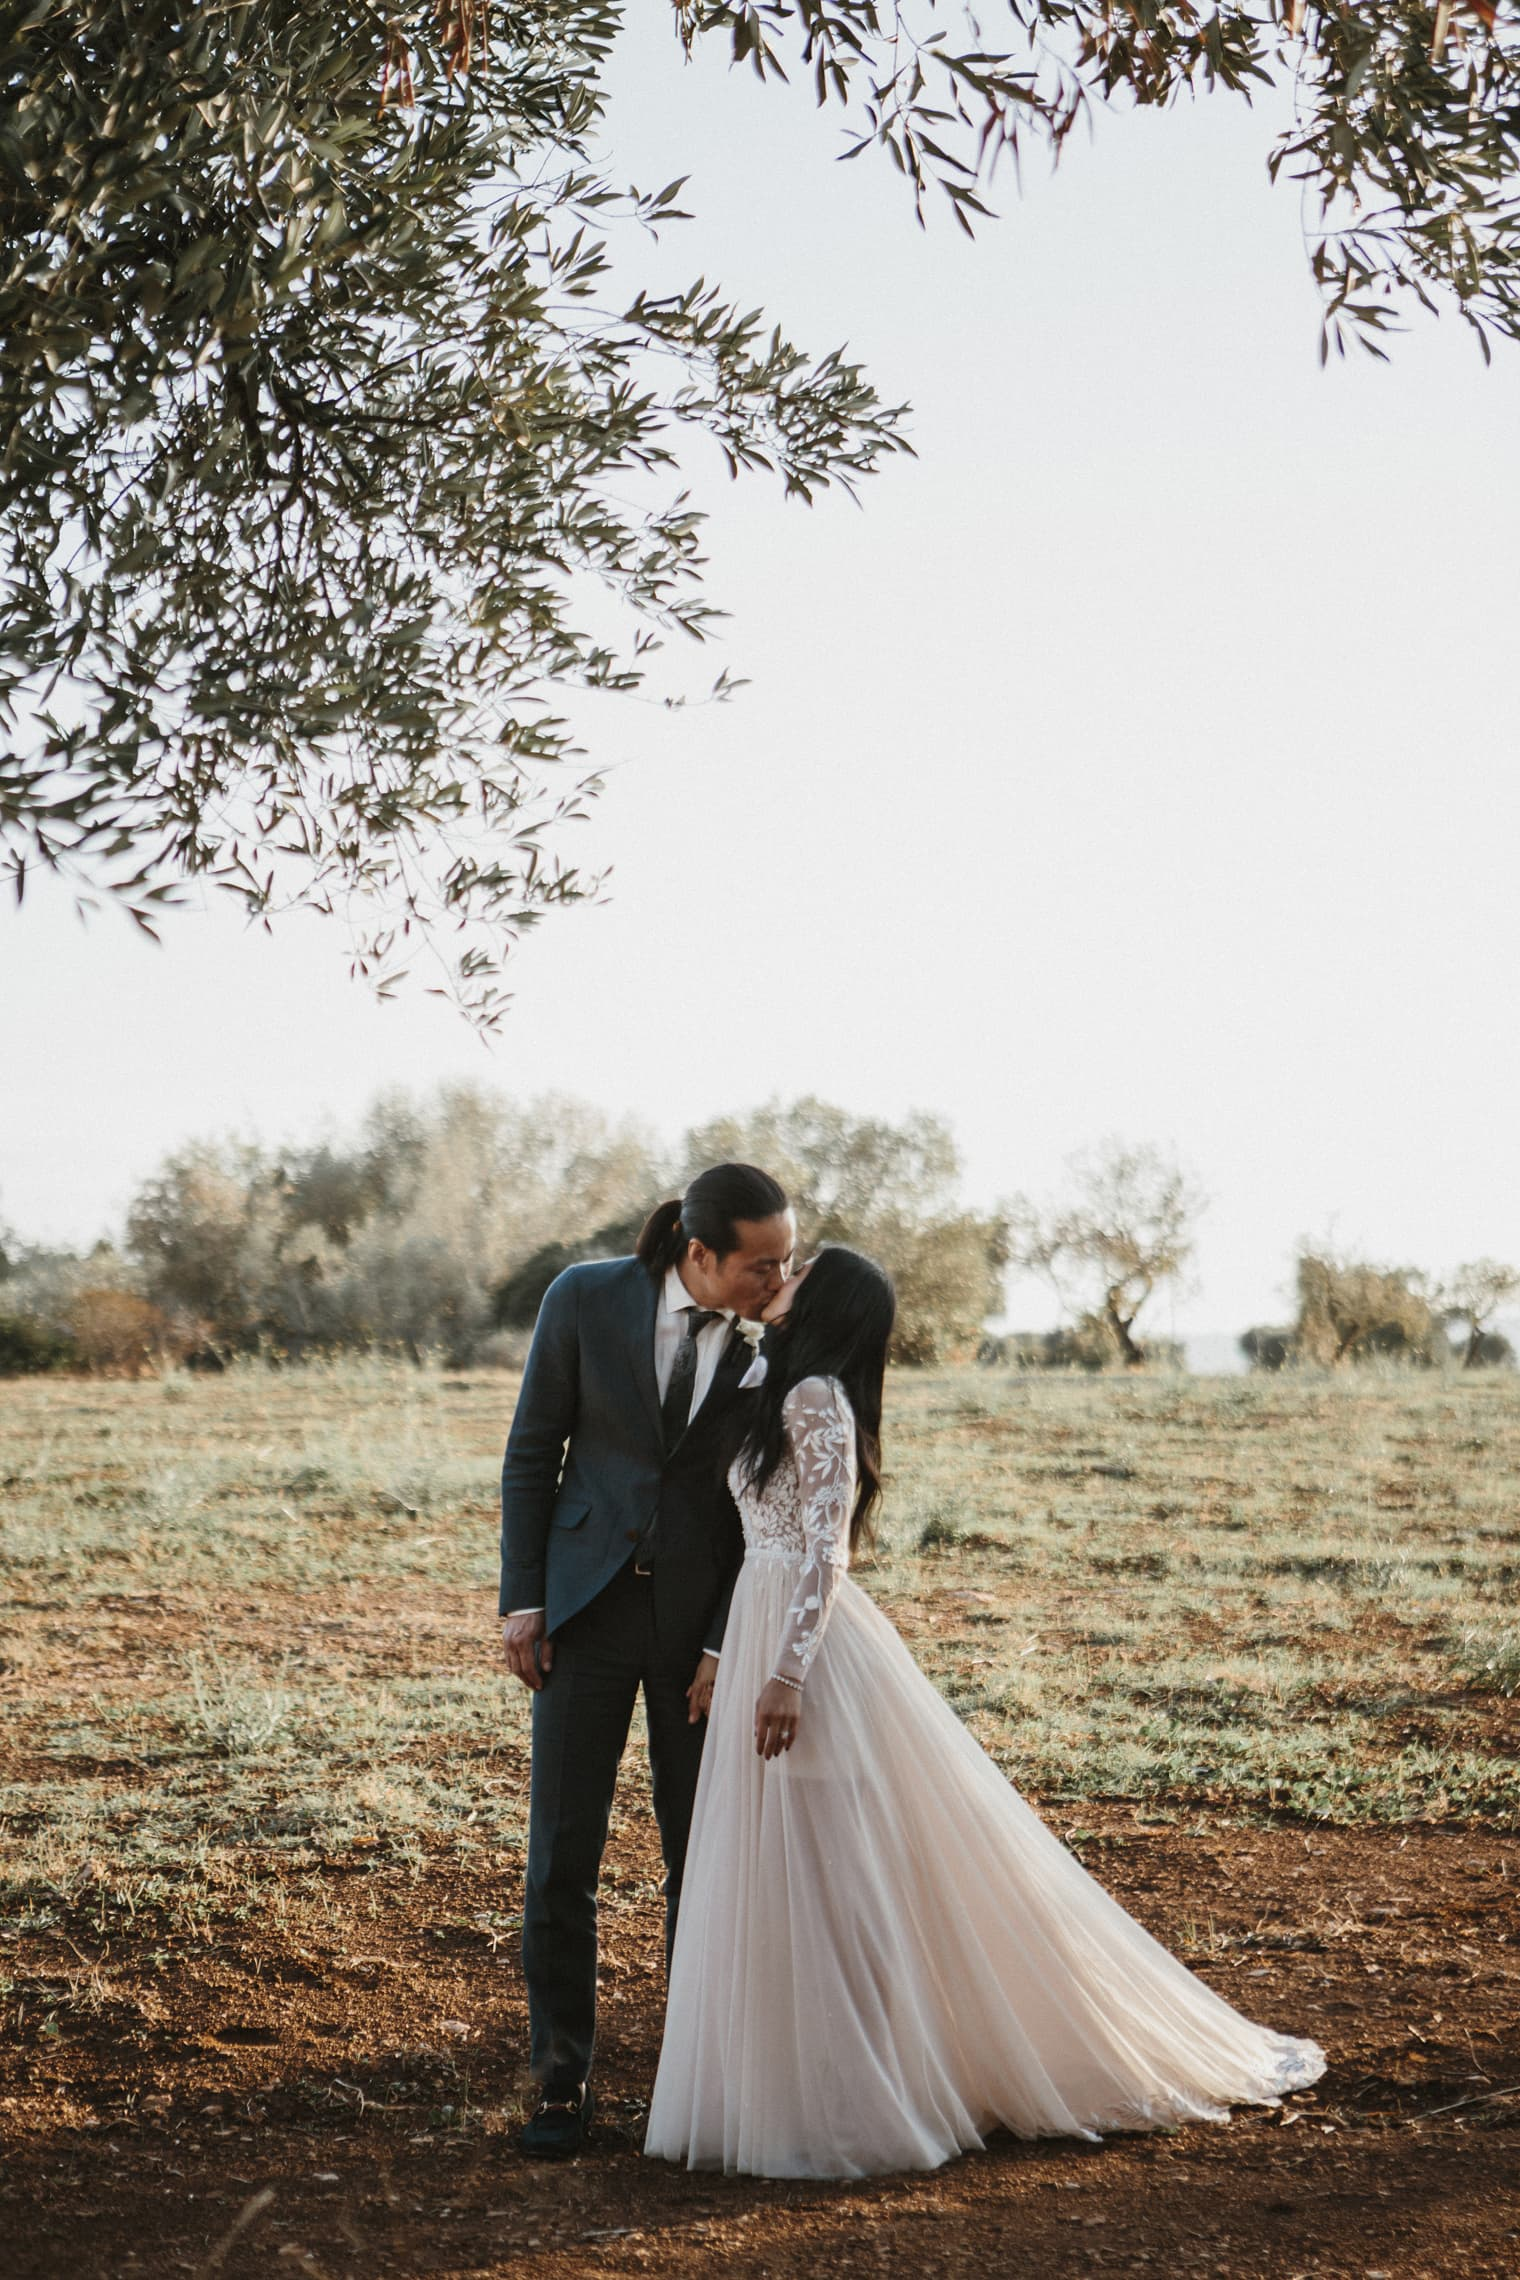 italy wedding photographer captures bridge and groom kissing under olive trees in Puglia